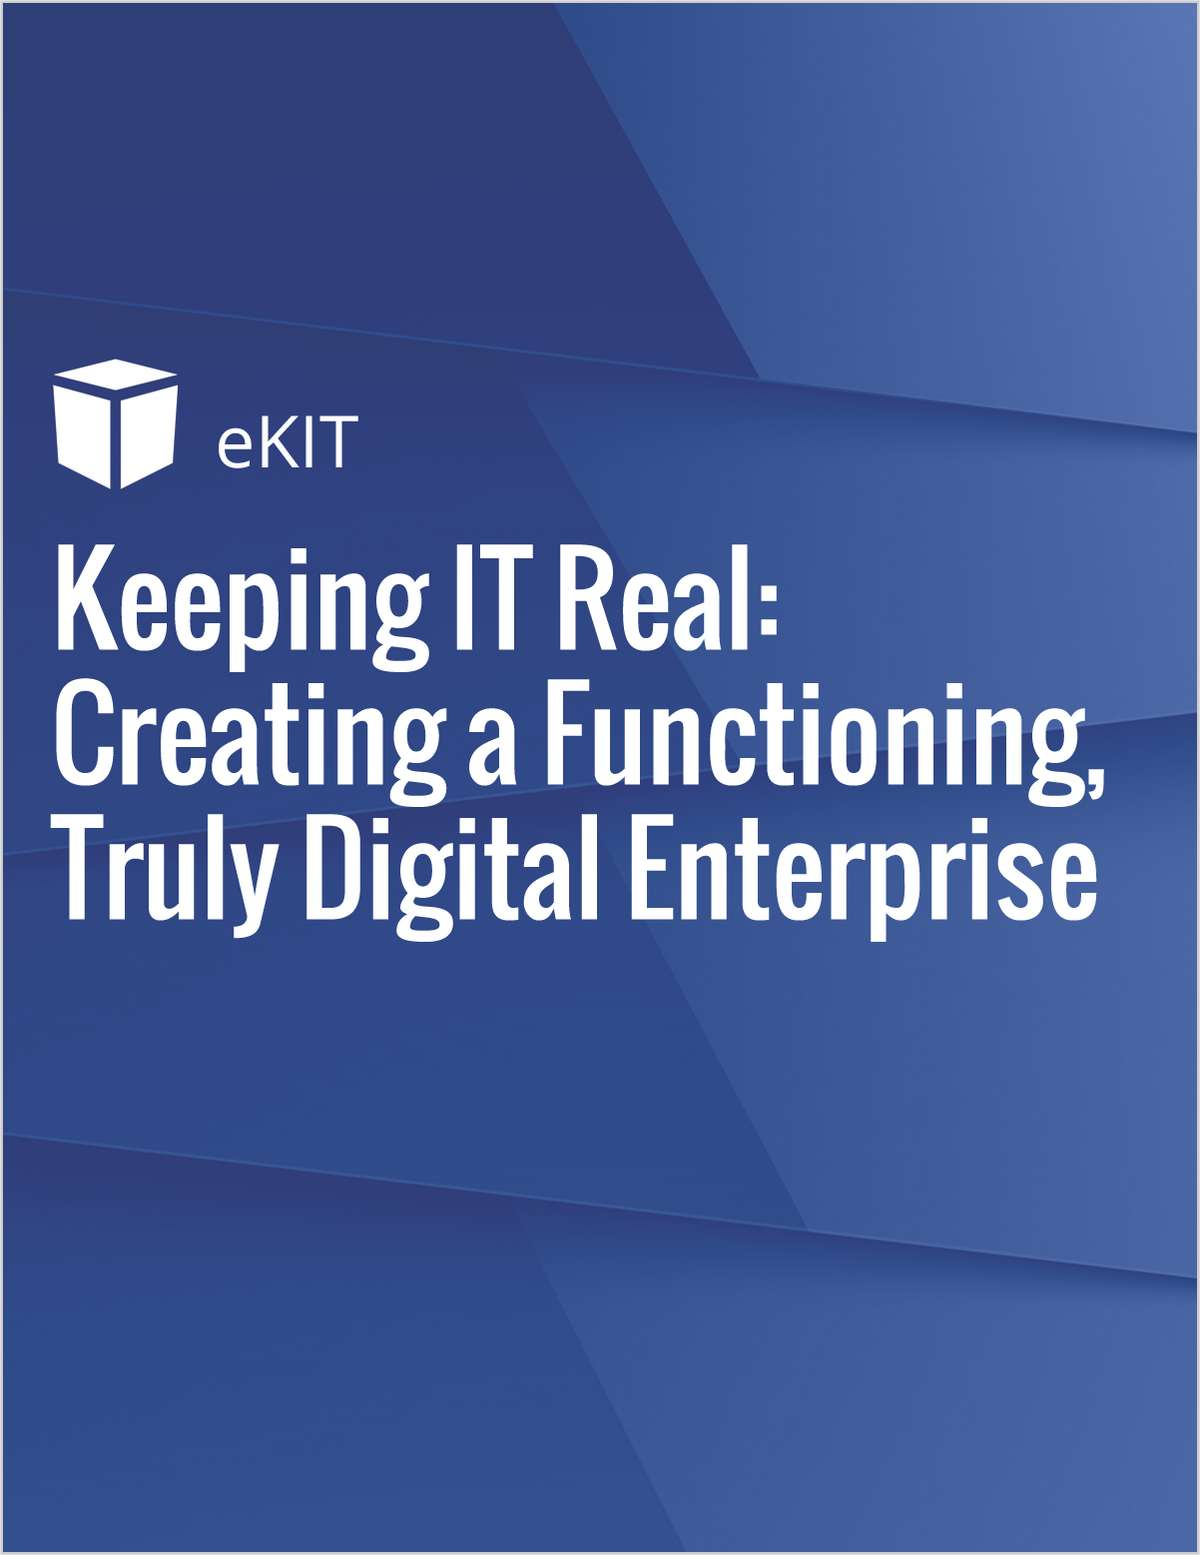 Keeping IT Real: Creating a Functioning, Truly Digital Enterprise